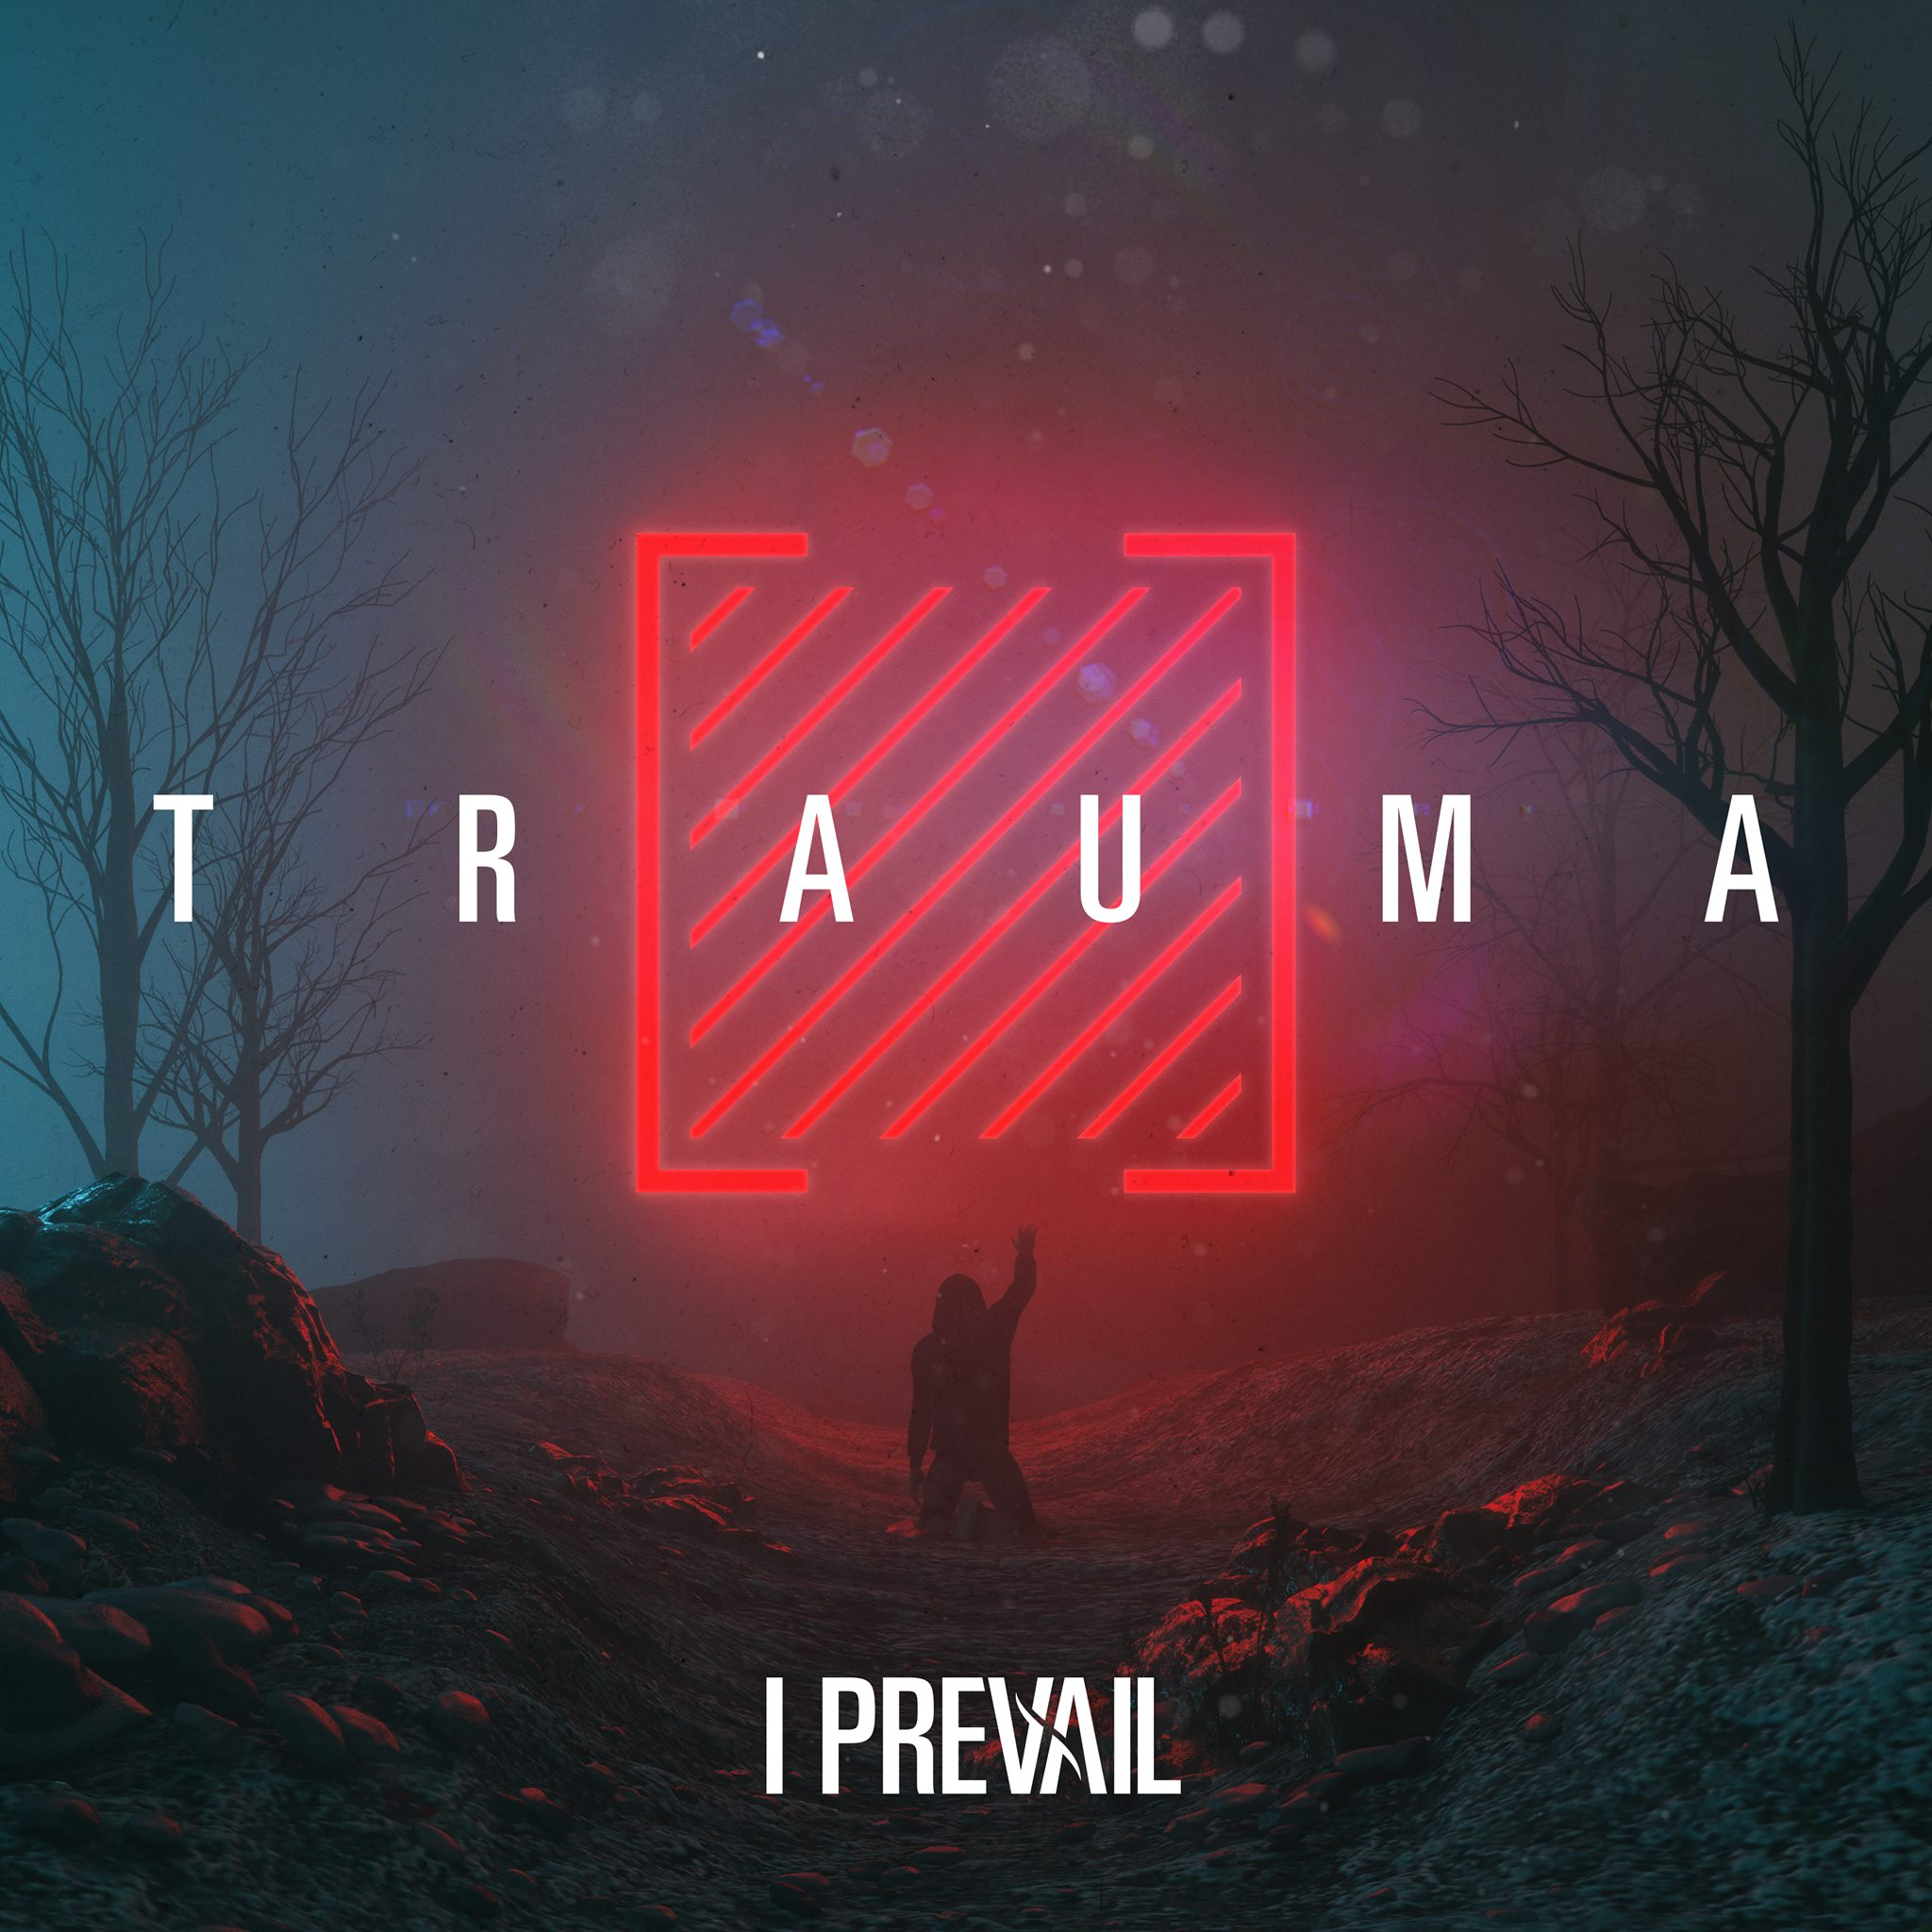 I Prevail announced their new album Trauma and teased the